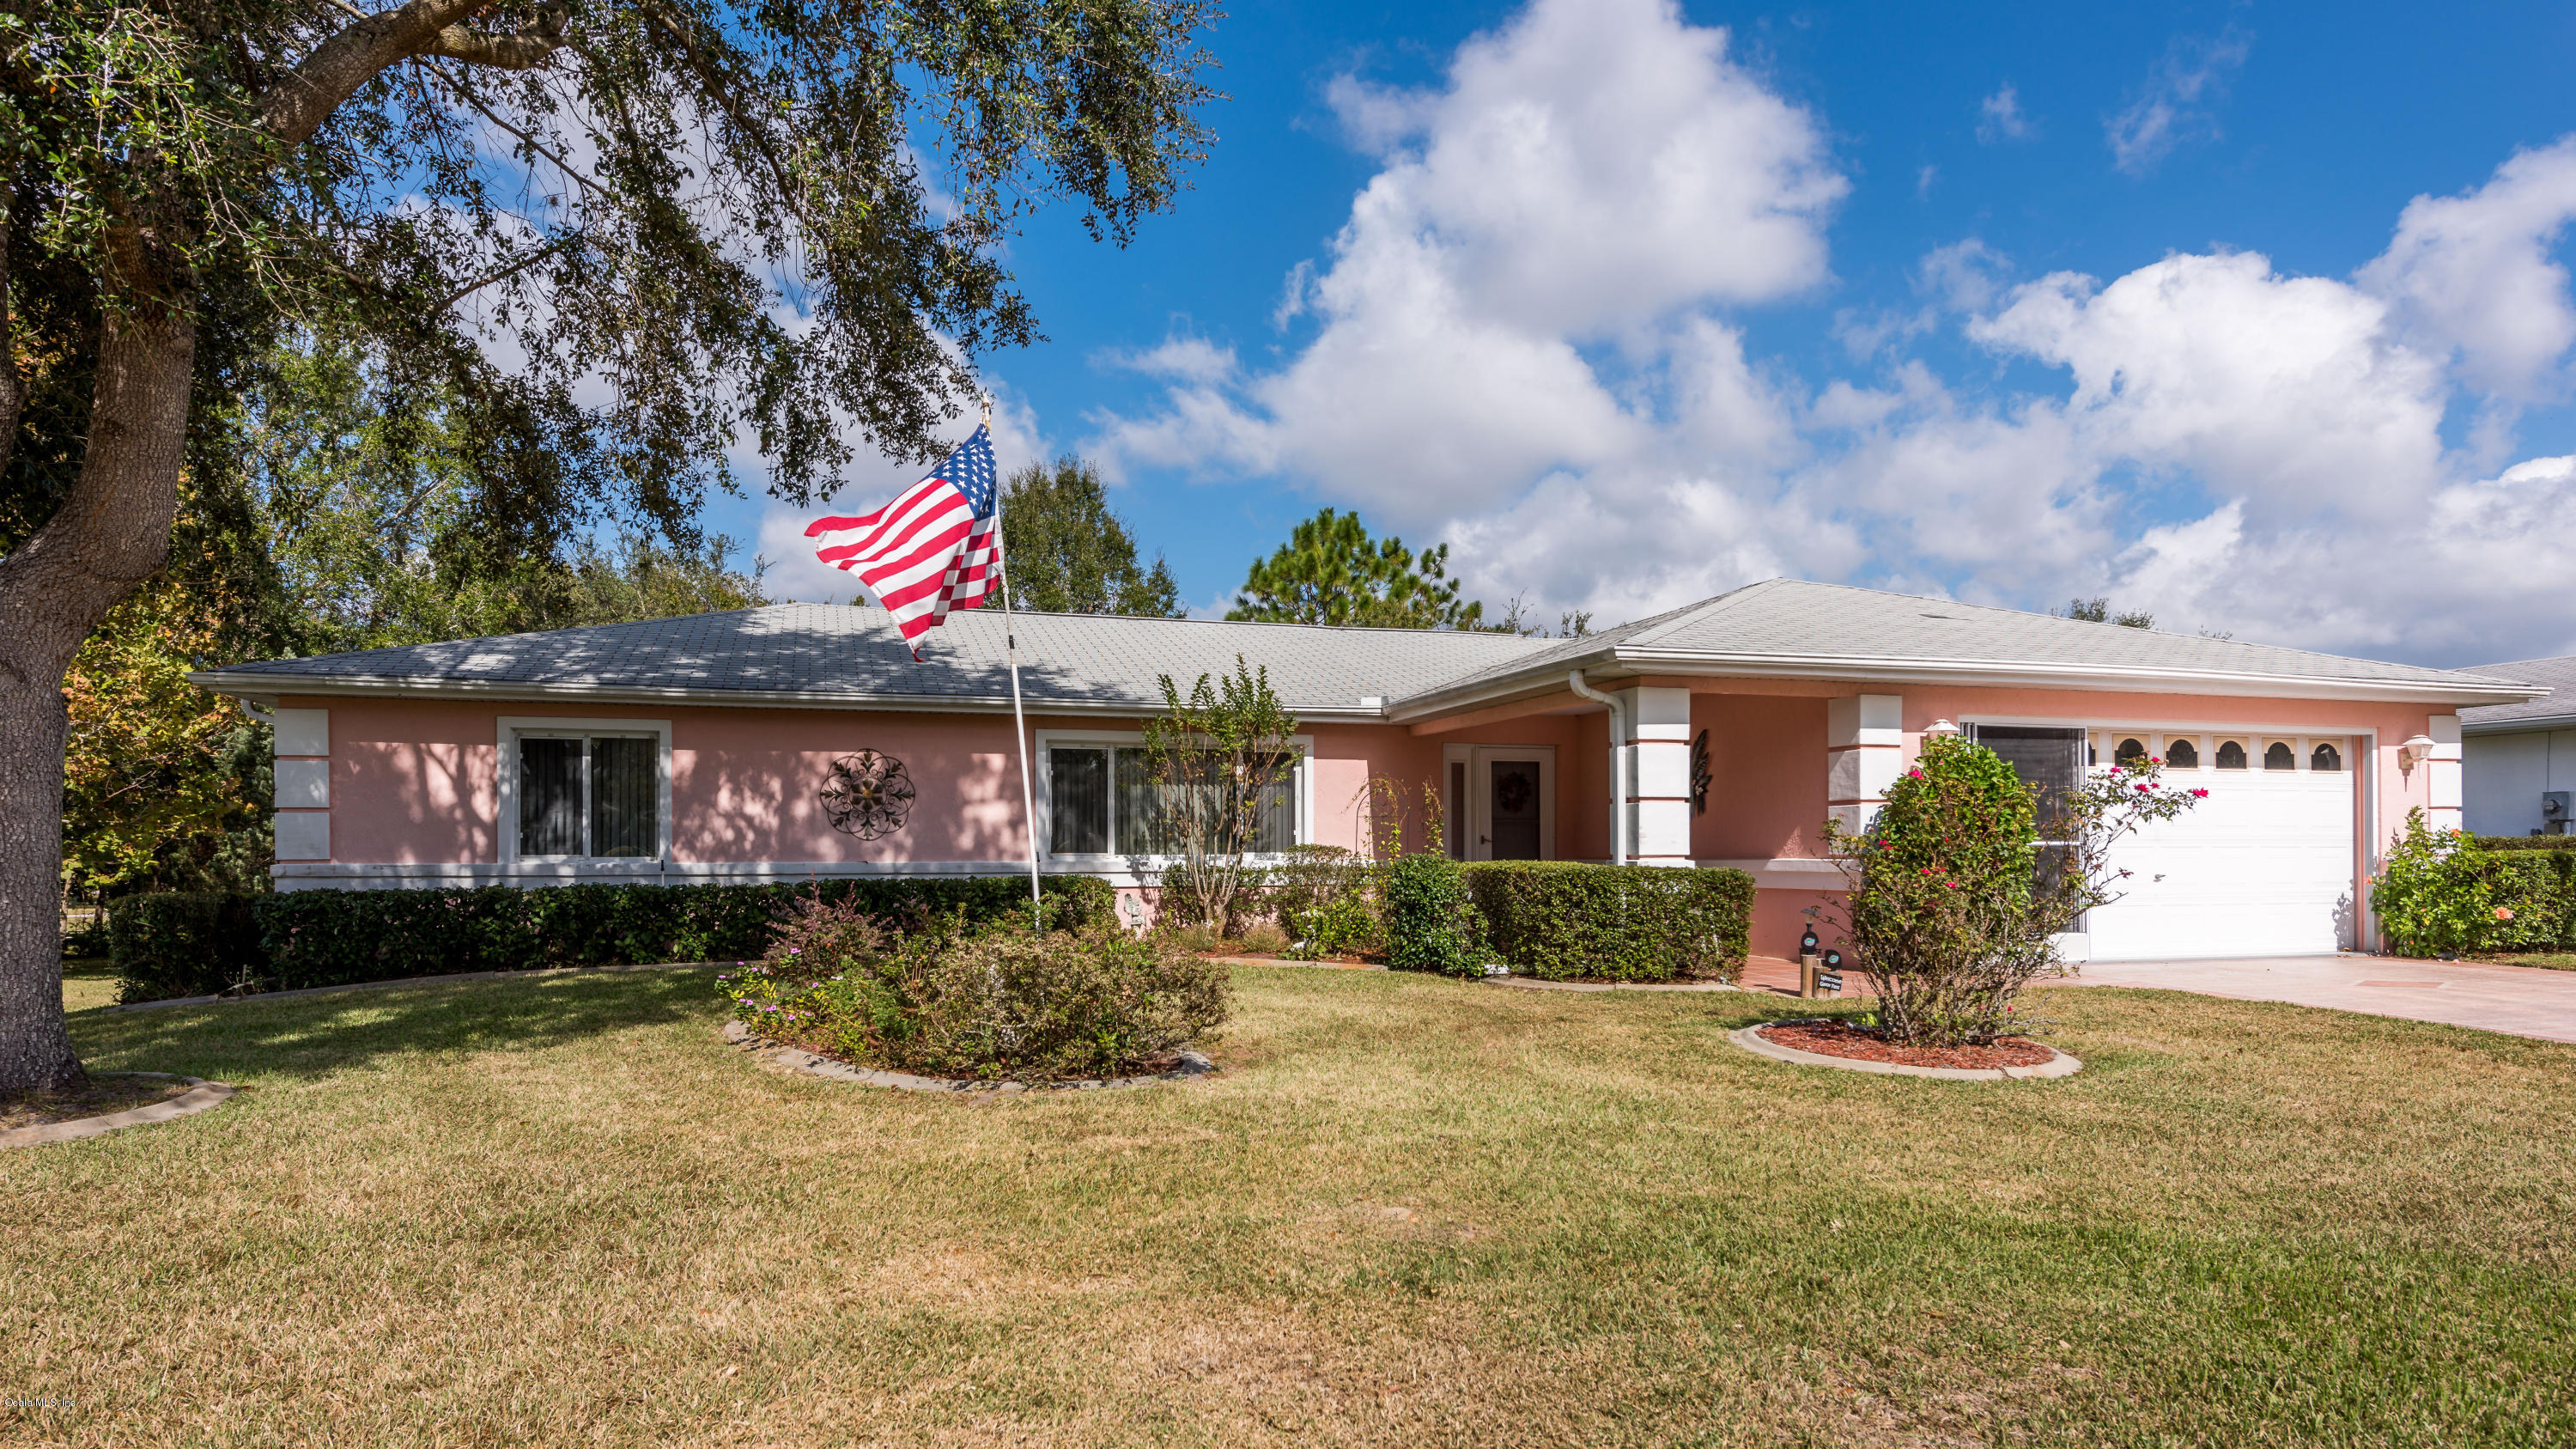 6099 SW 104TH STREET, OCALA, FL 34476